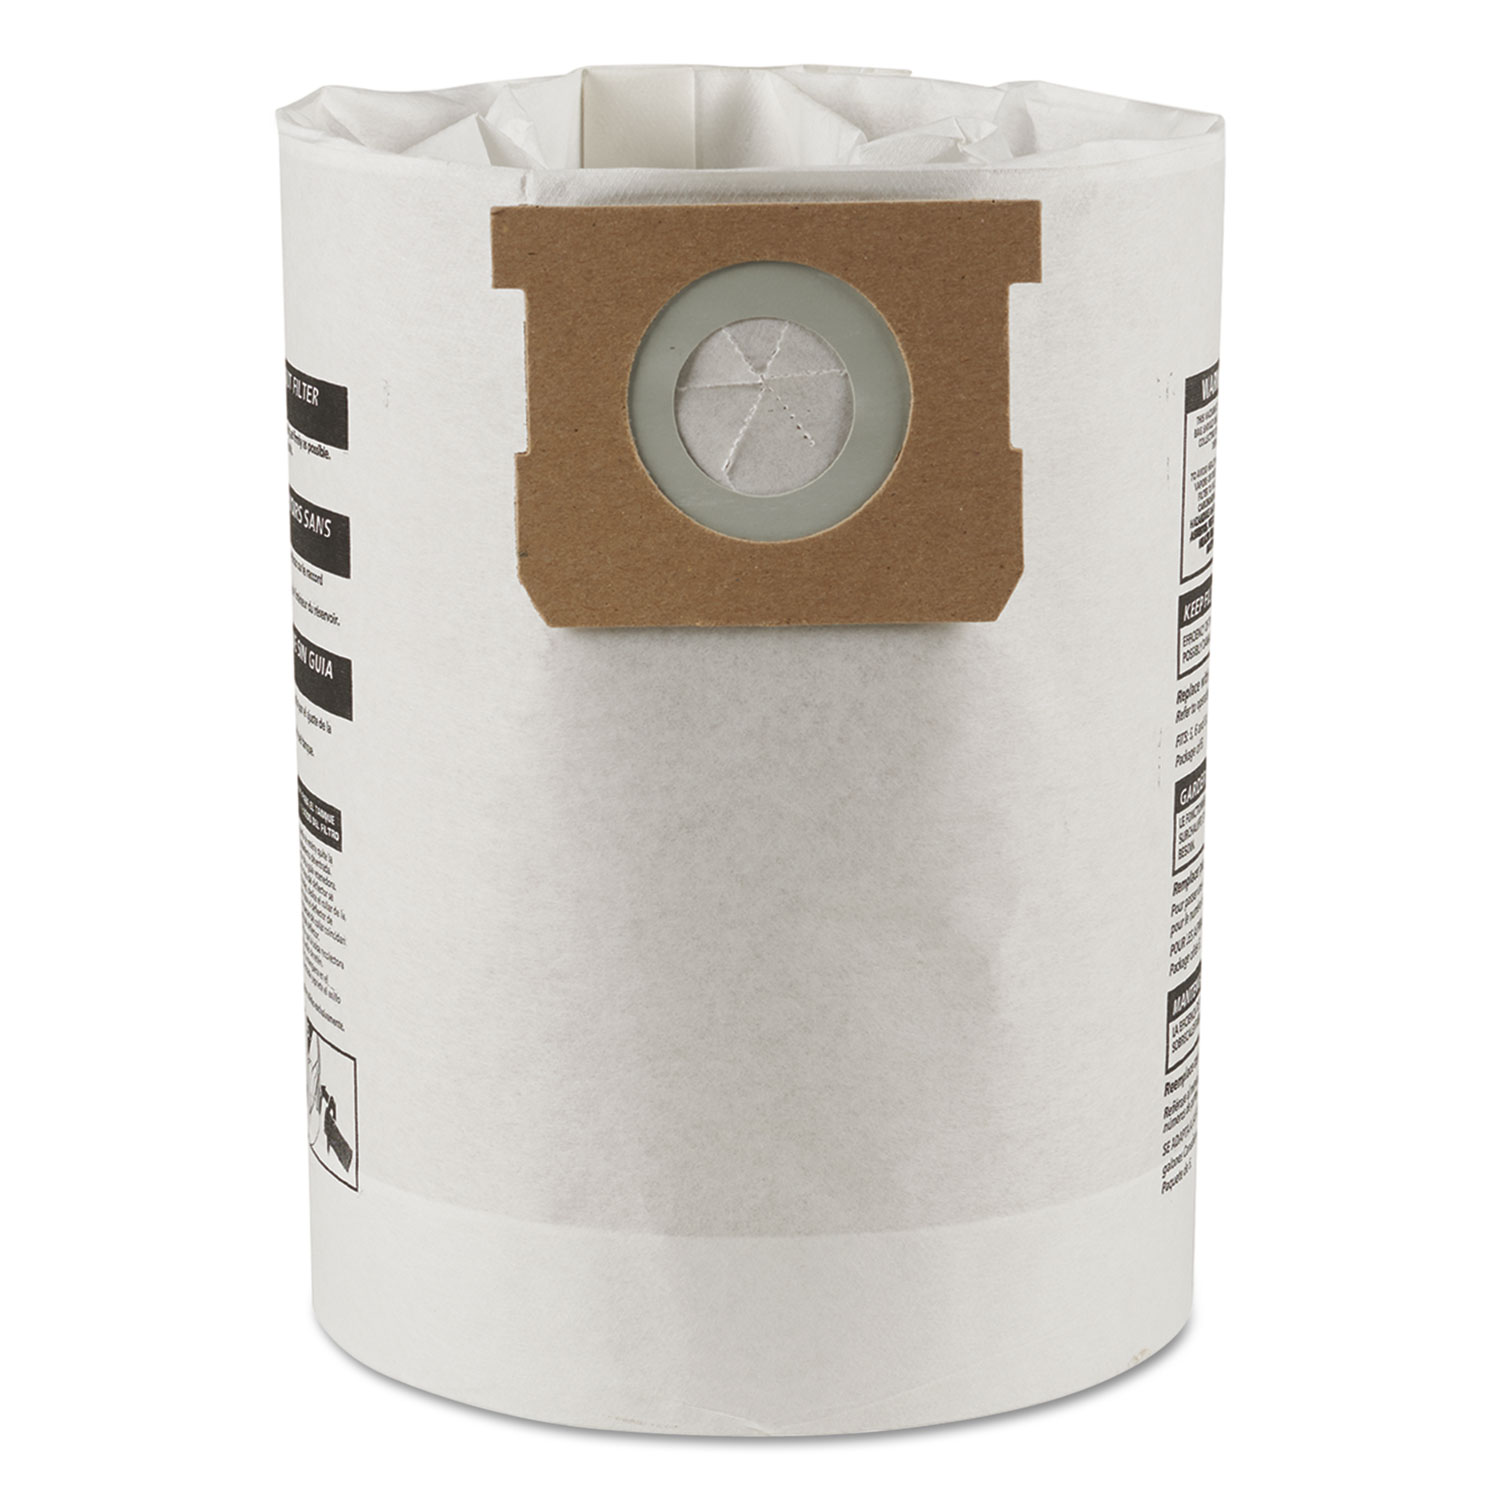 Disposable Collection Filter Bags, Fits 10-14 gallon tanks